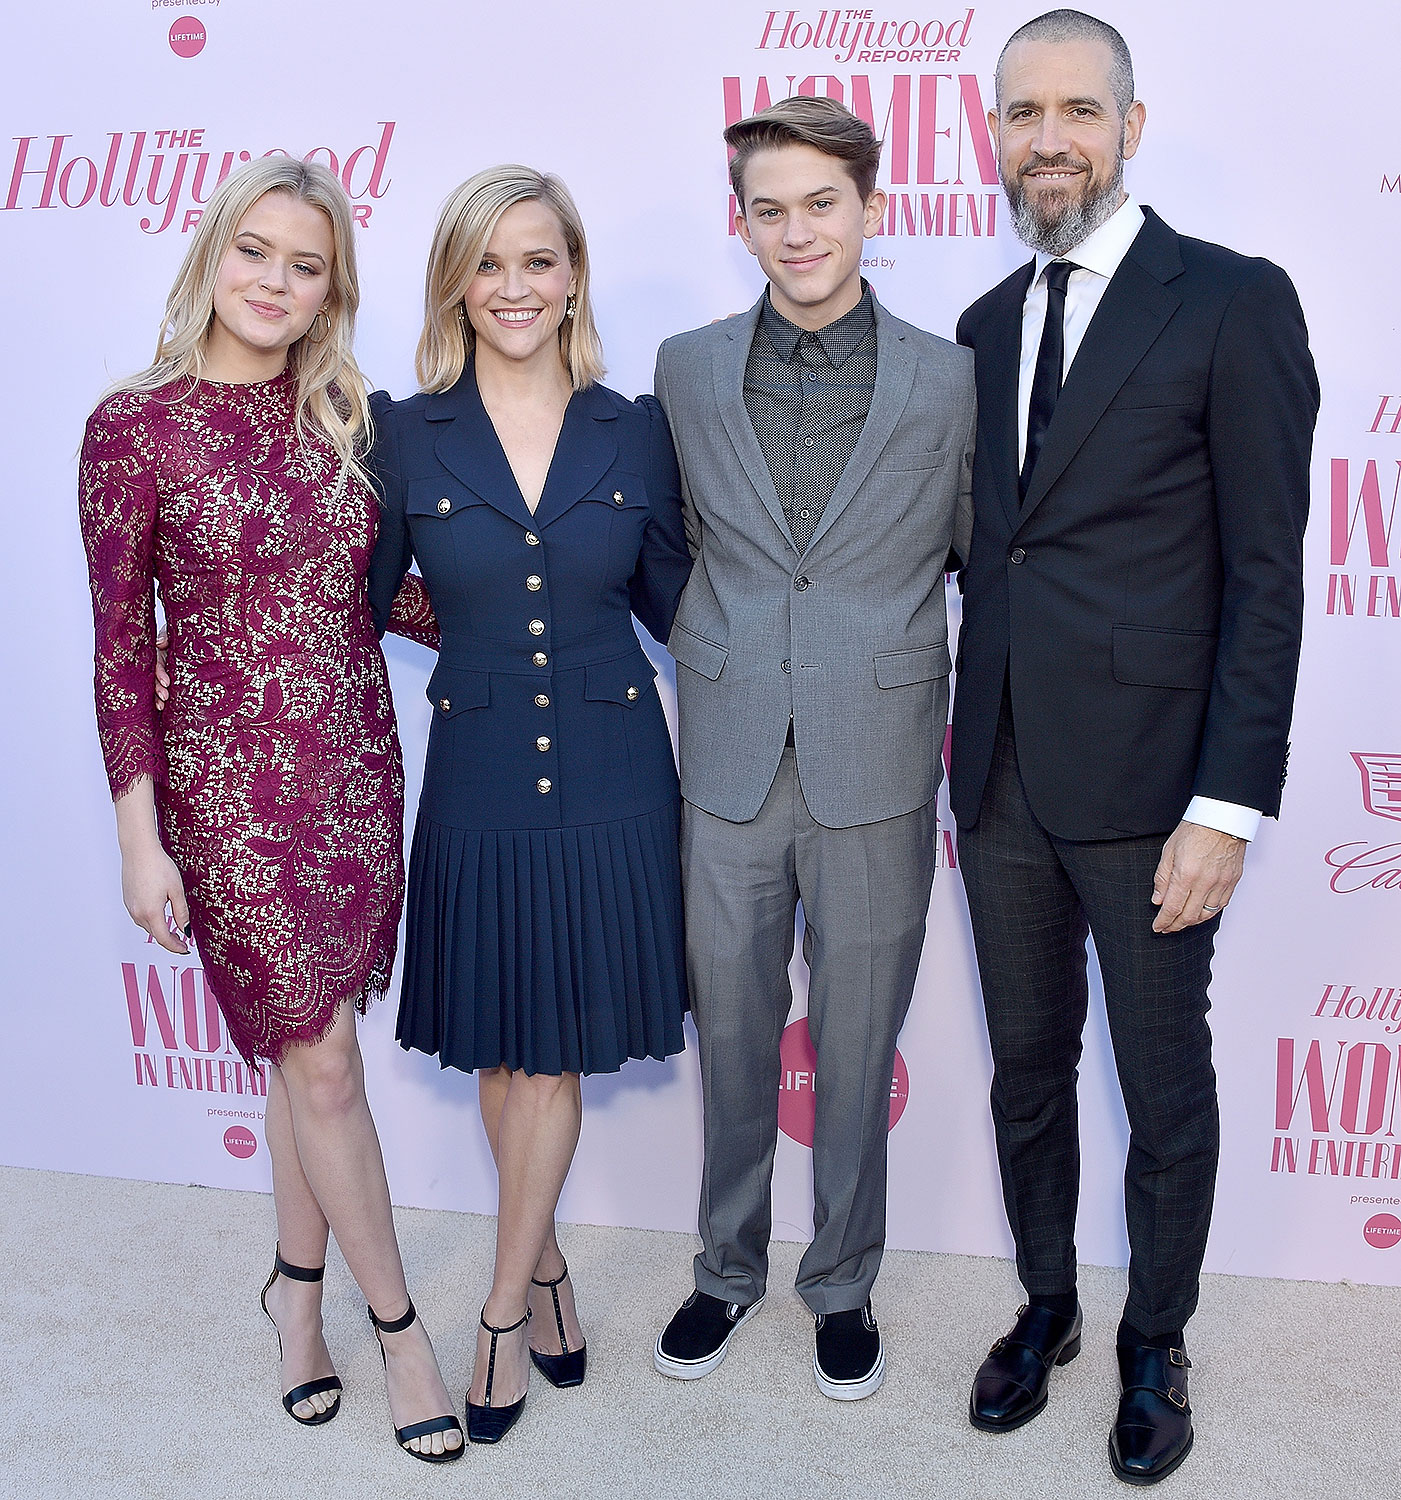 Ava Elizabeth Phillippe, Reese Witherspoon, Deacon Reese Phillippe, and Jim Toth